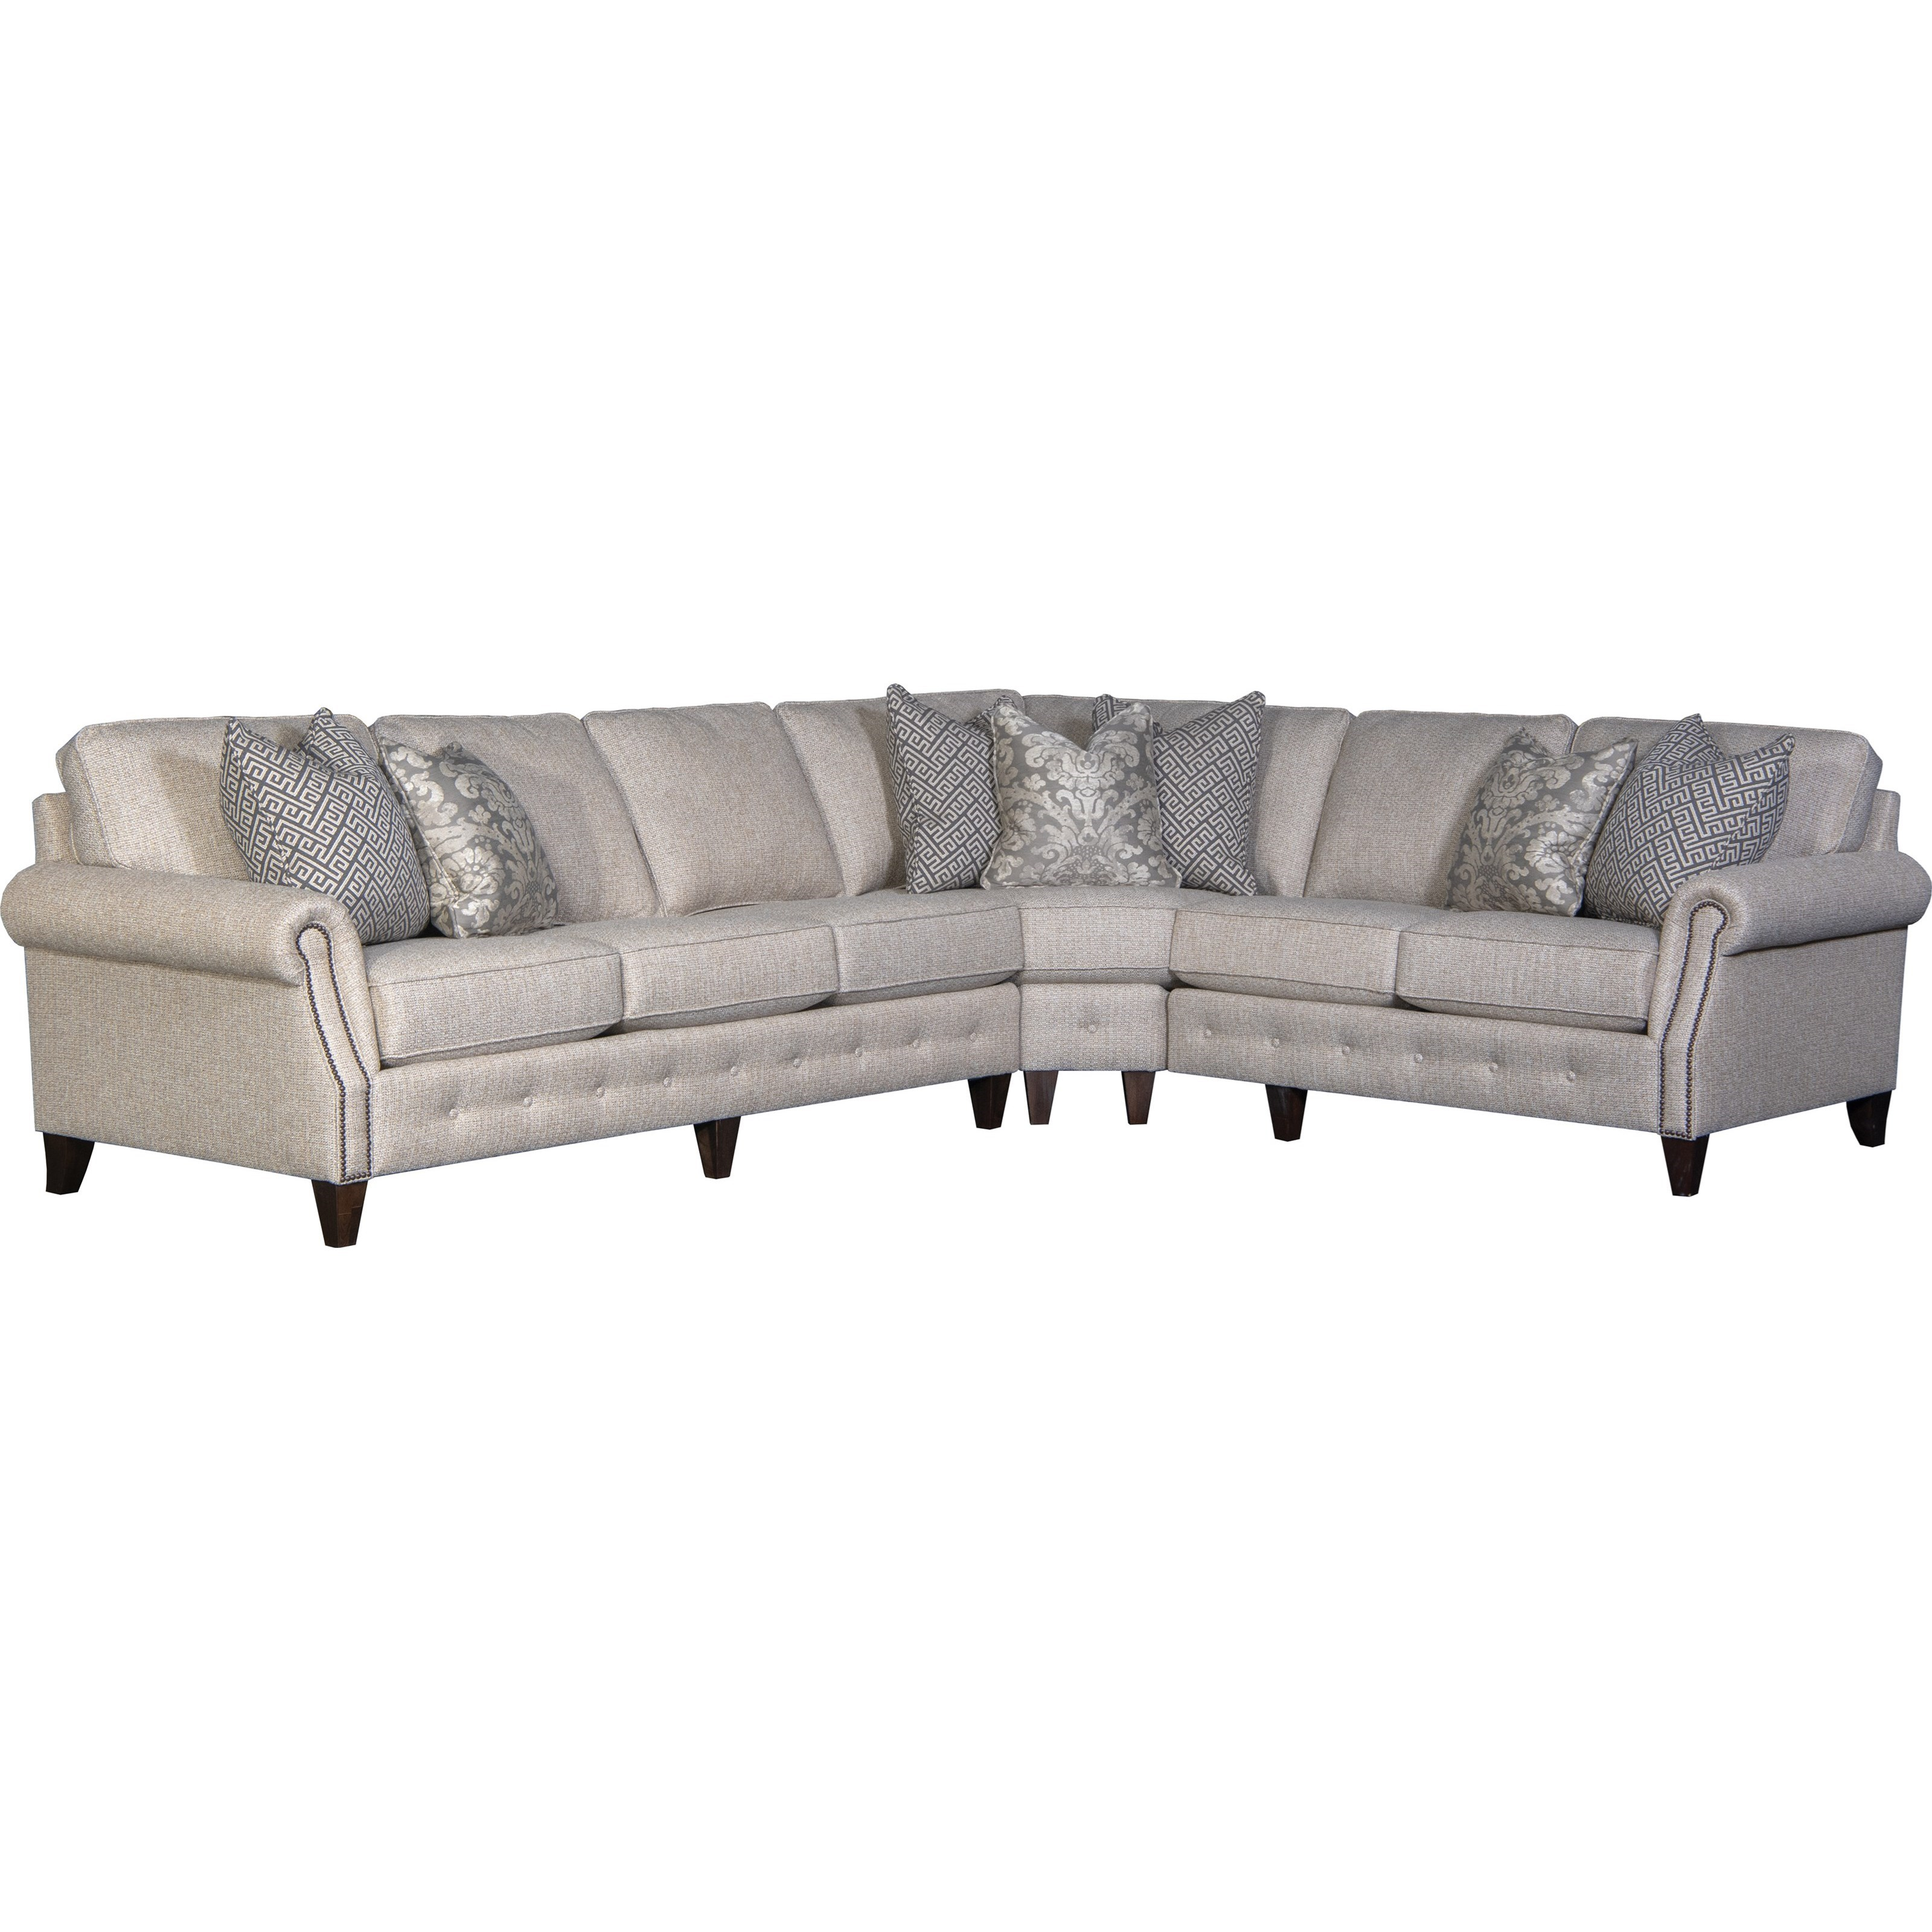 4040 5-Seat Sectional Sofa w/ LAF Sofa by Mayo at Wilson's Furniture